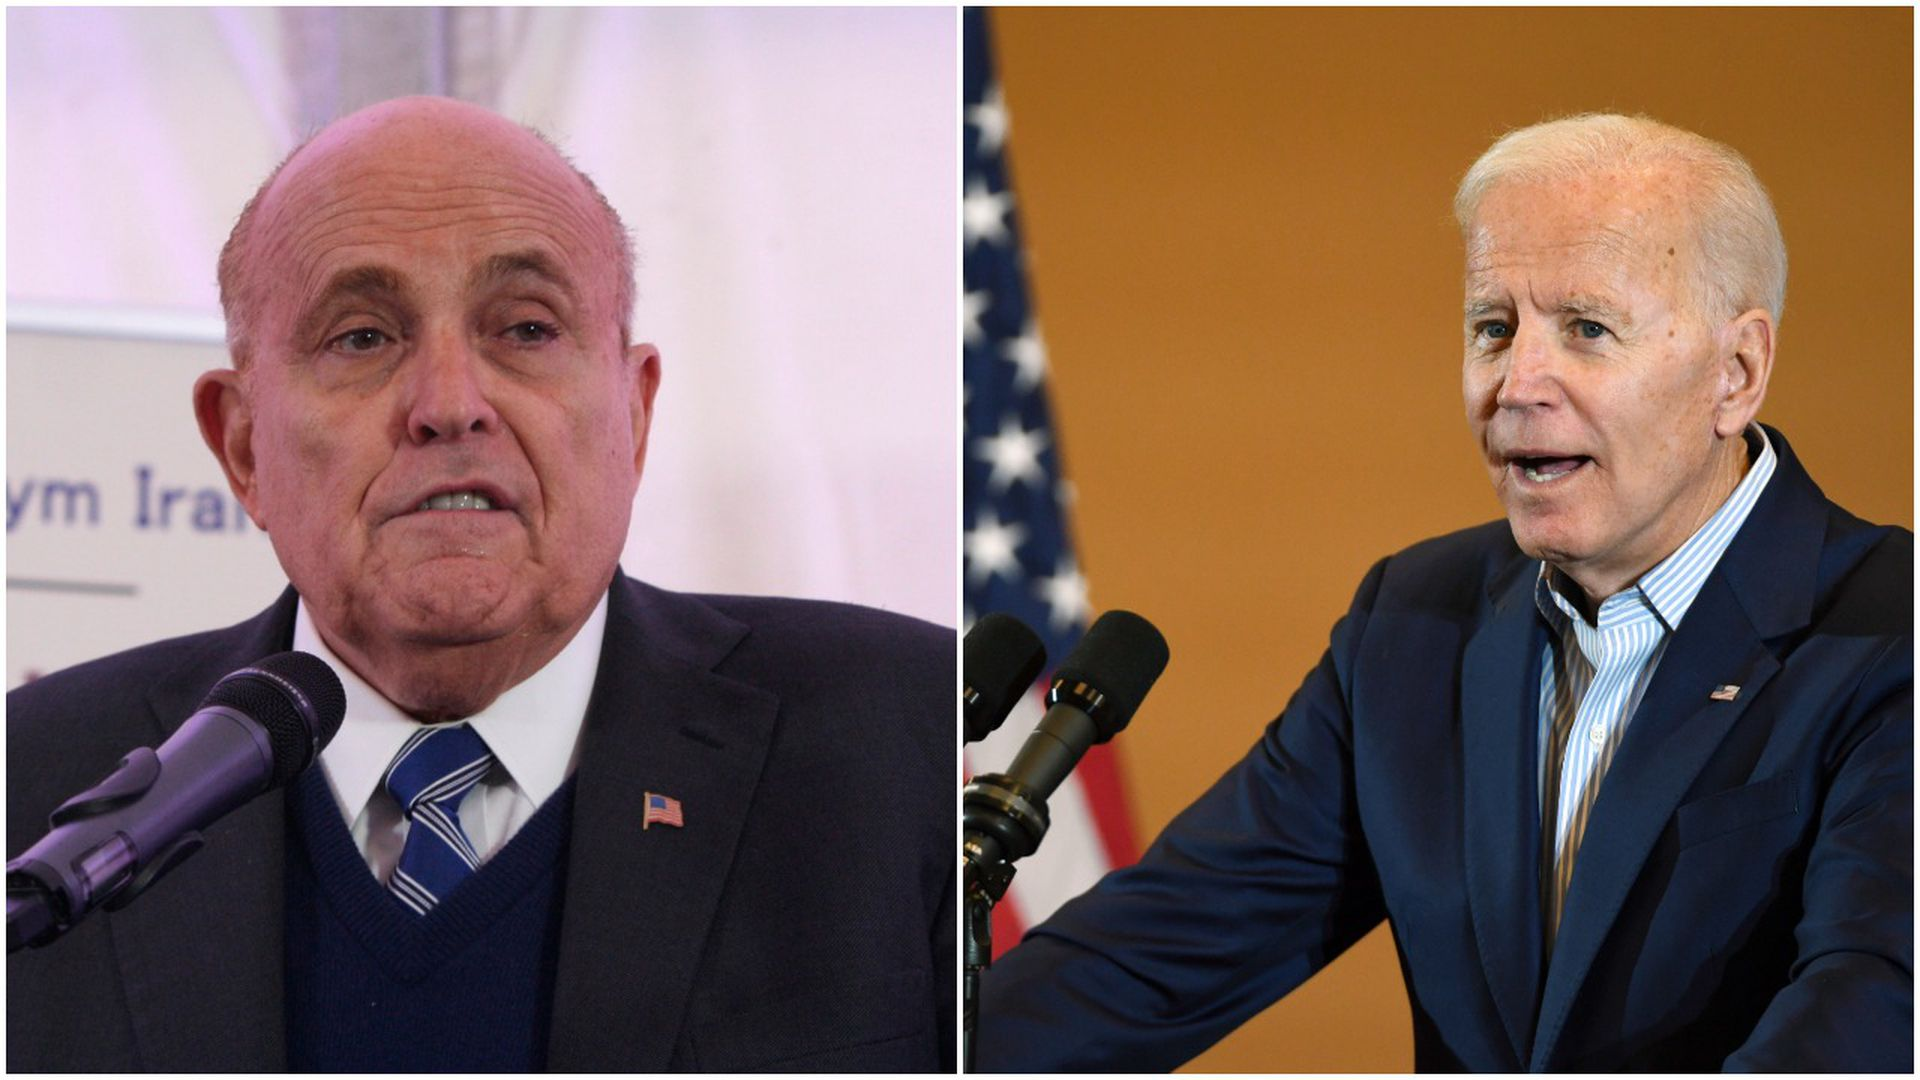 This image is a split screen between Giuliani and Biden.